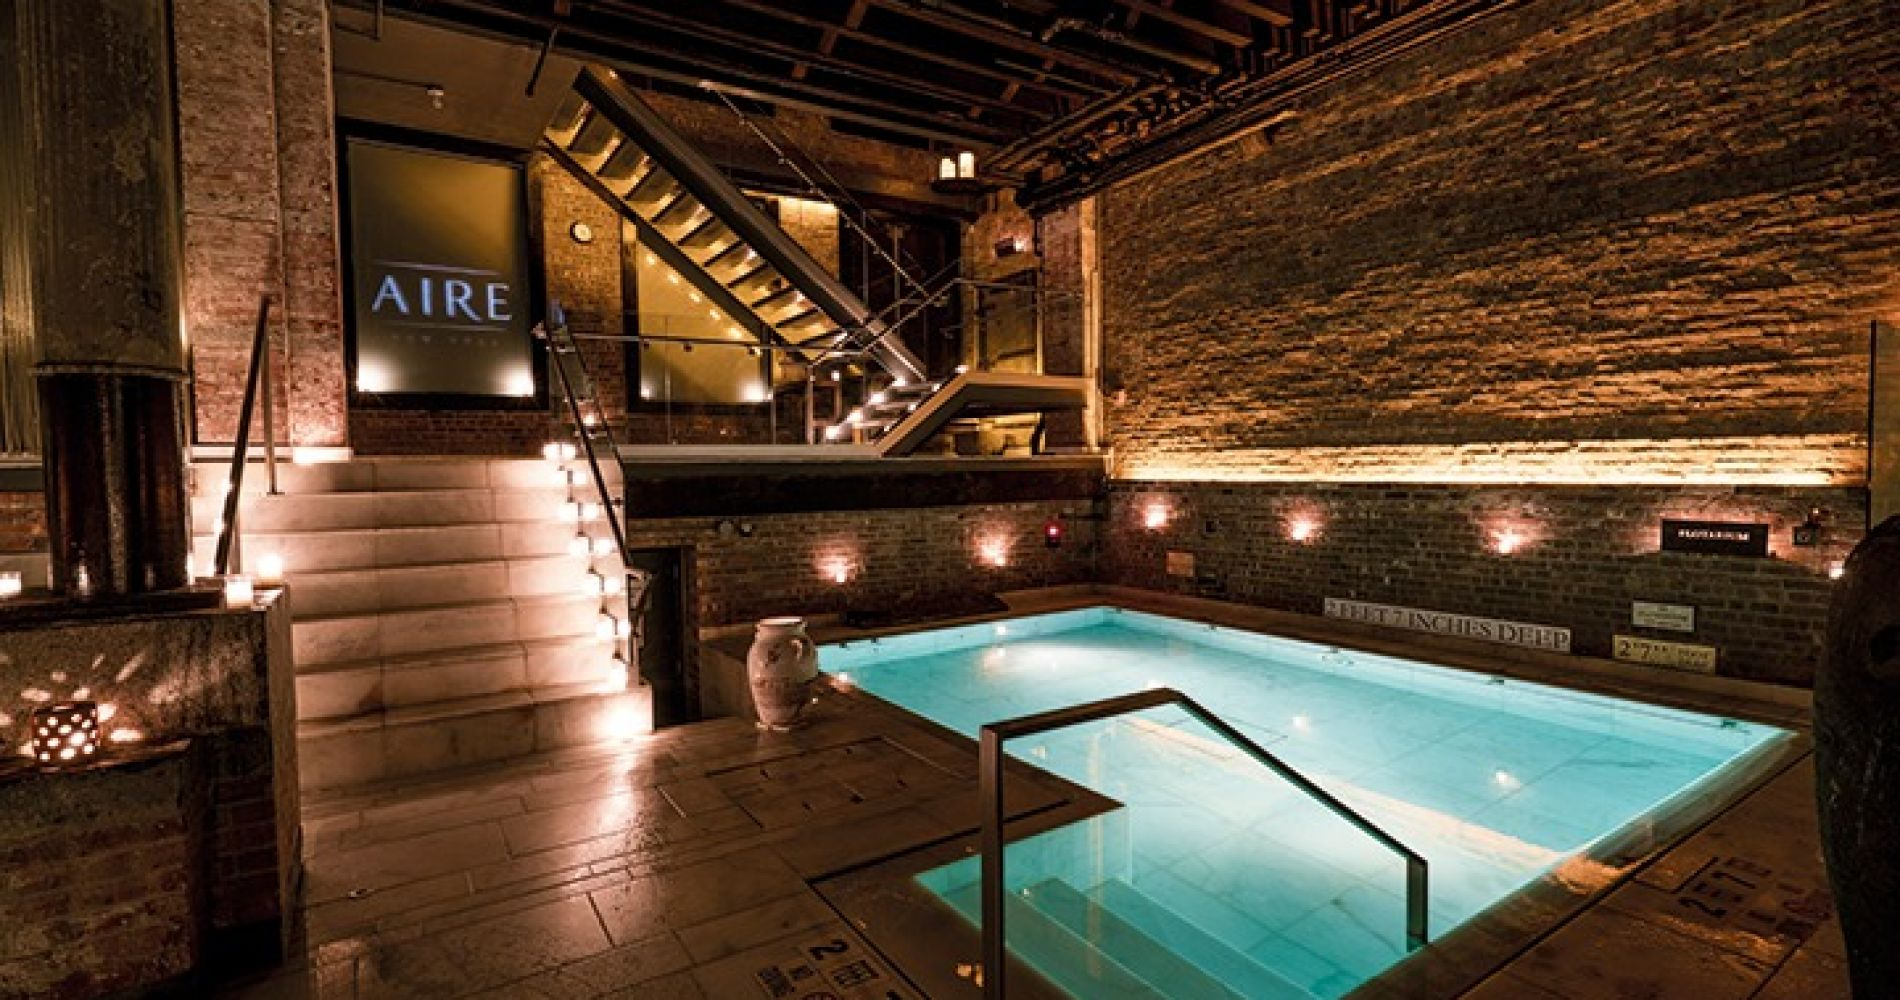 The Ancient Thermal Bath and Relaxing Massage in New York